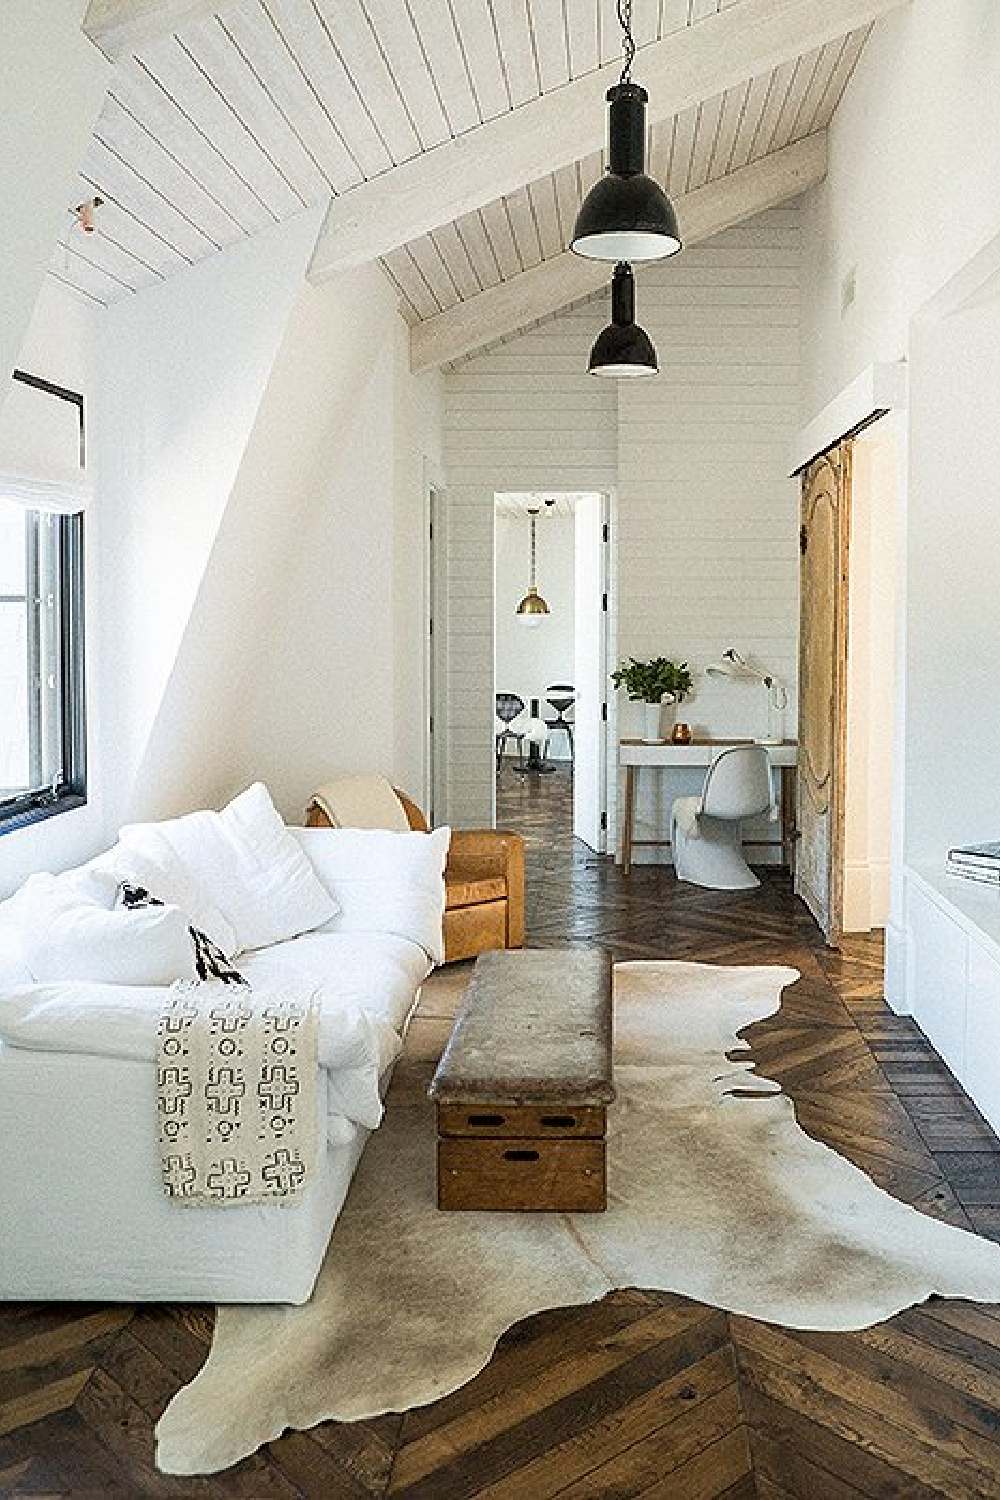 Leanne Ford designed modern rustic interior design with white sofa, white walls and black accents.